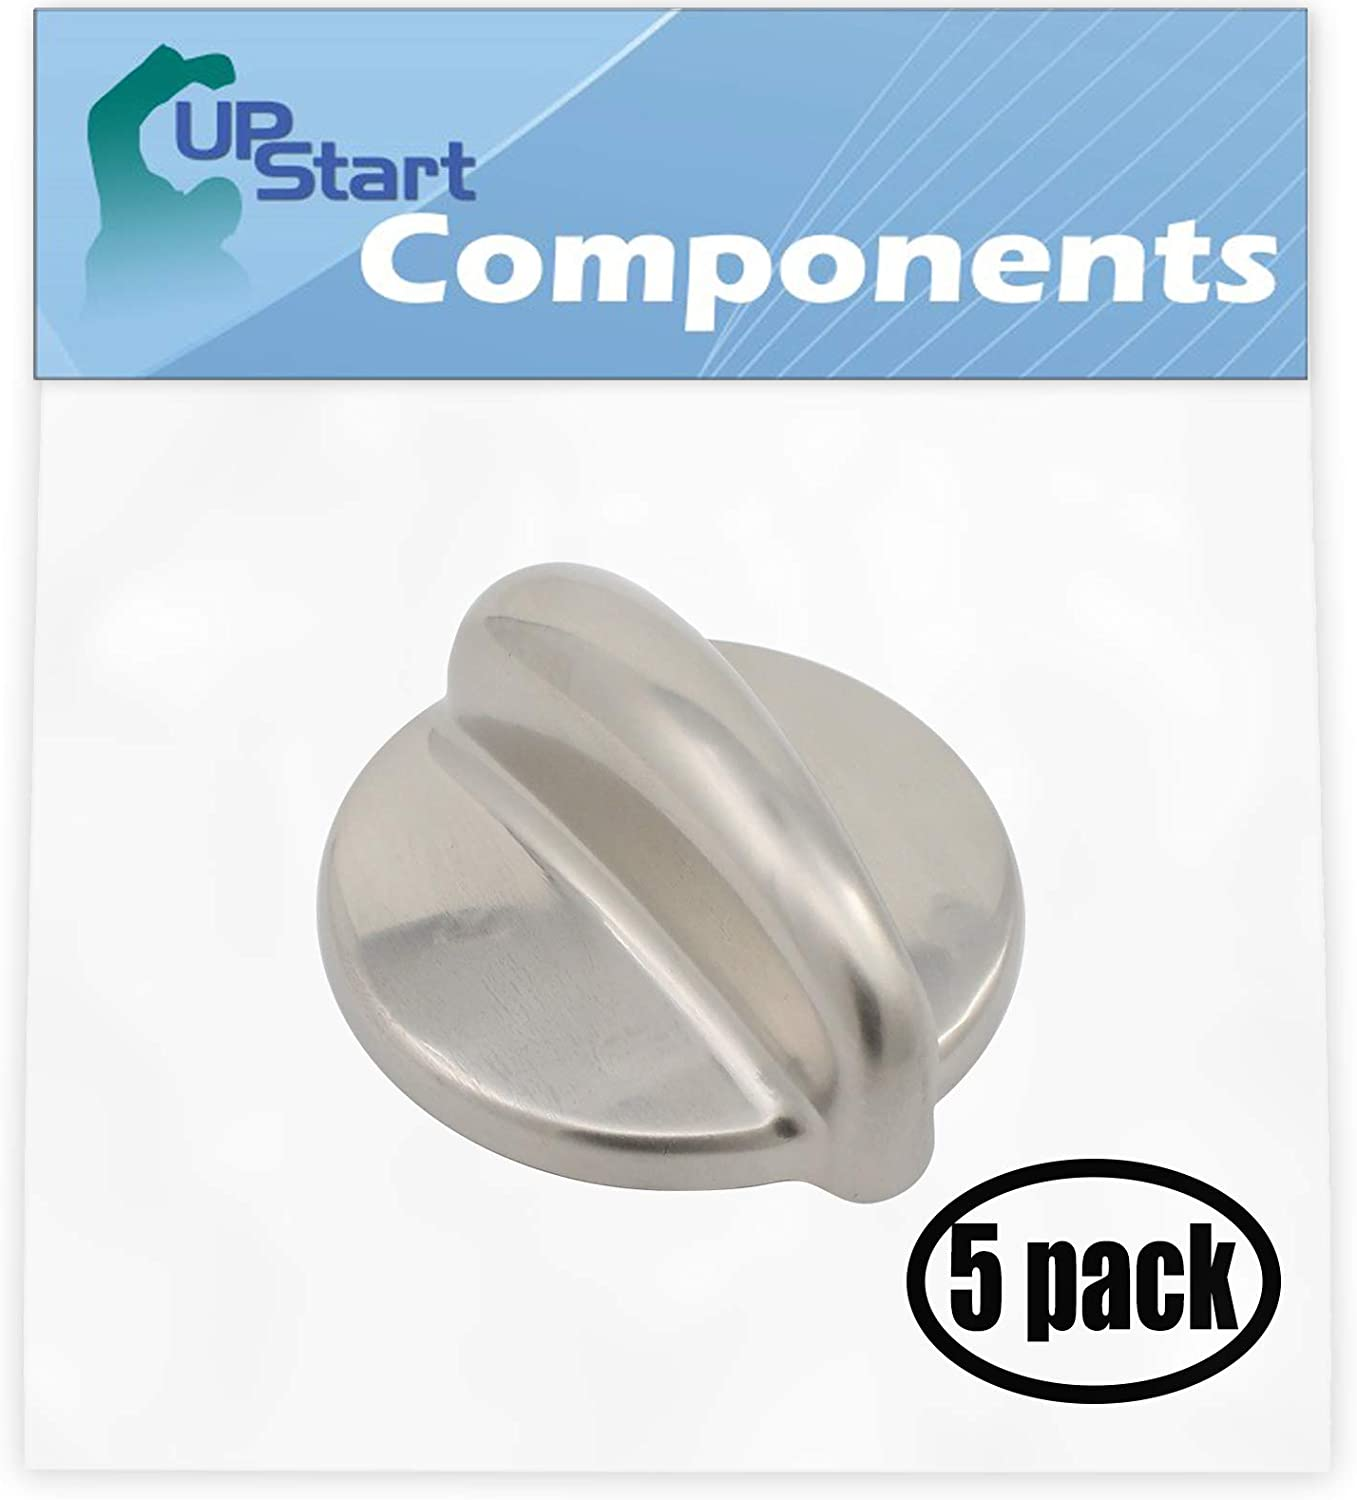 5 Pack Replacement Surface Burner Control WB03K10303 Range, Stove, Oven Control Knob for General Electric PGB918SEM1SS Gas Range